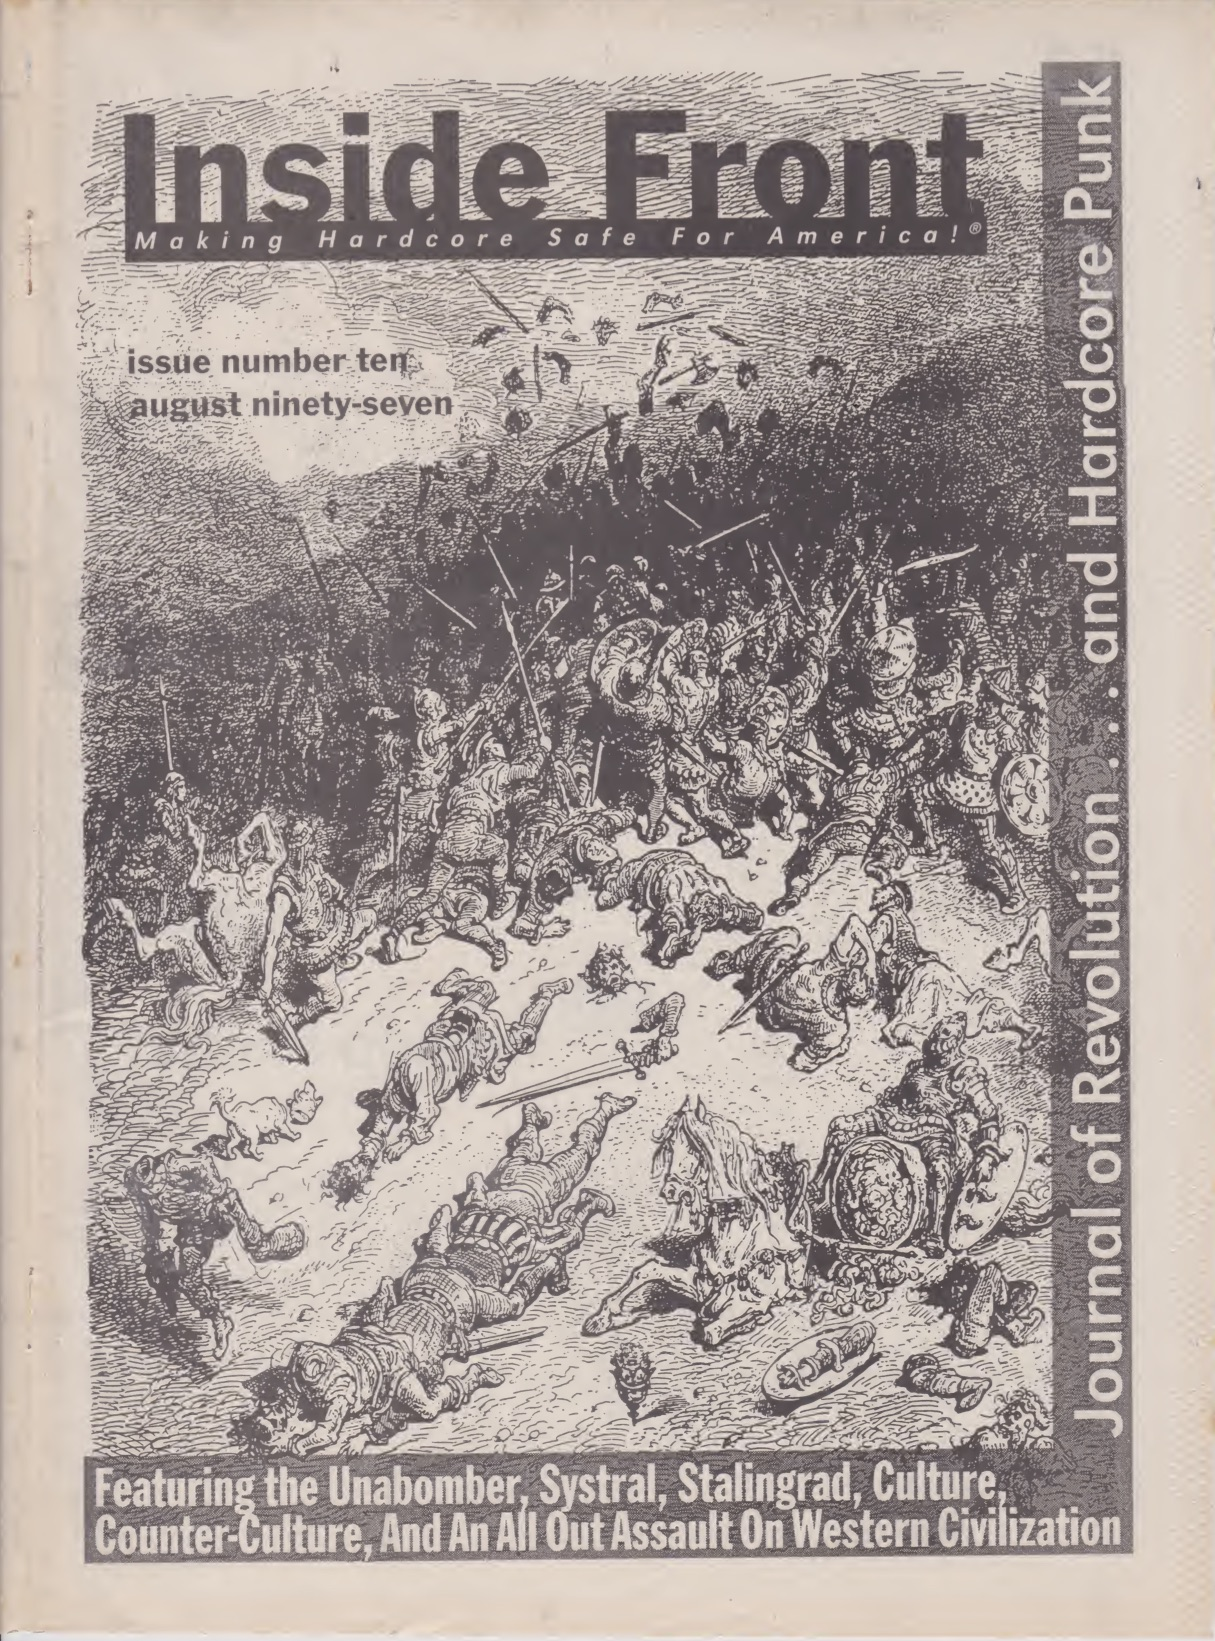 Photo of 'Inside Front #10' front cover